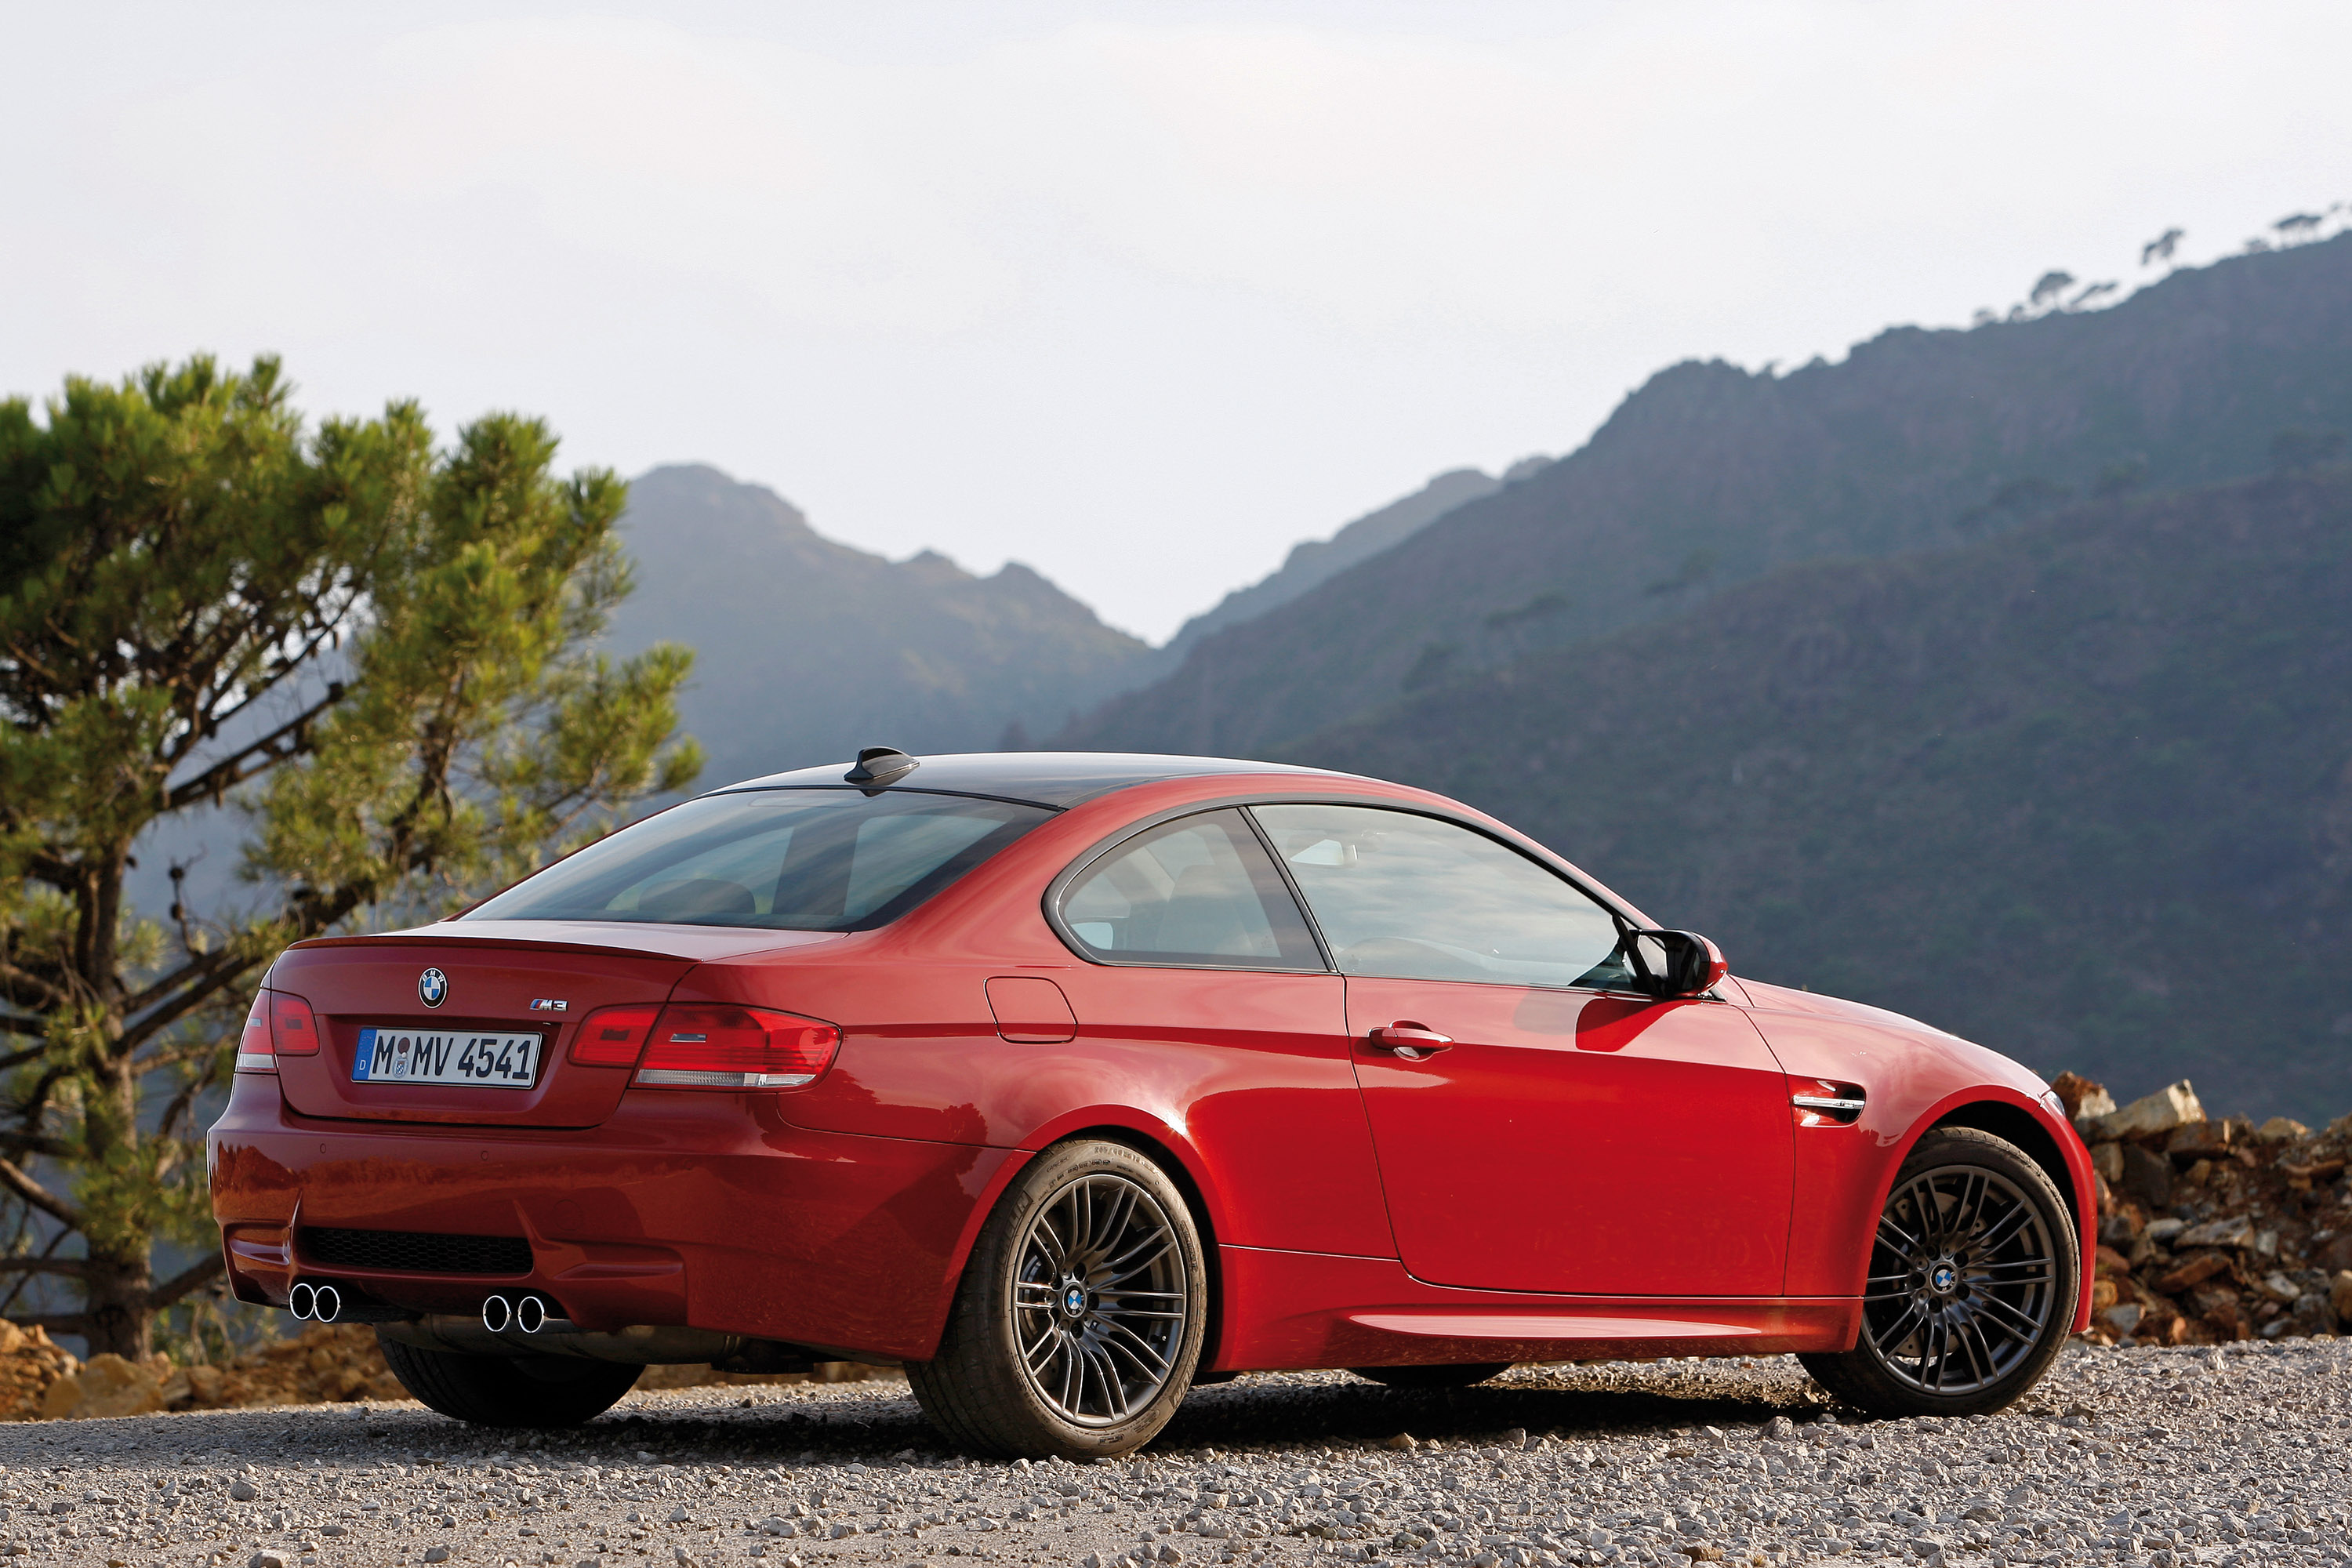 BMW E92 M3 vs tuned BMW E92 335i